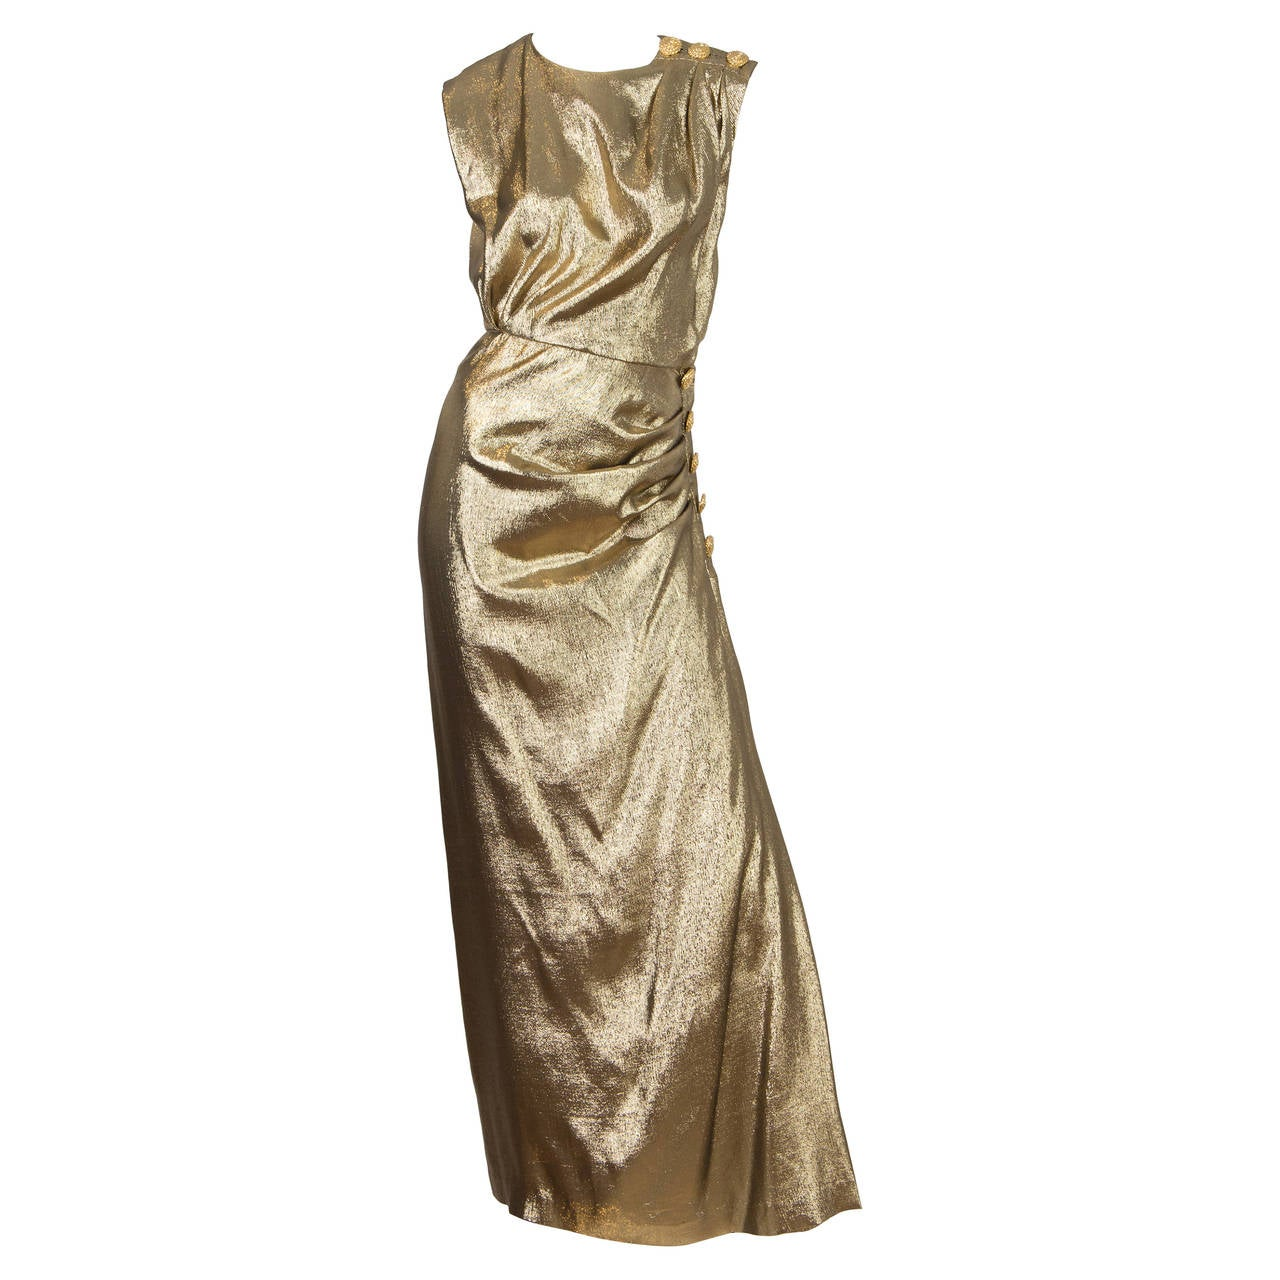 Yves Saint Laurent Gold Lamé Gown